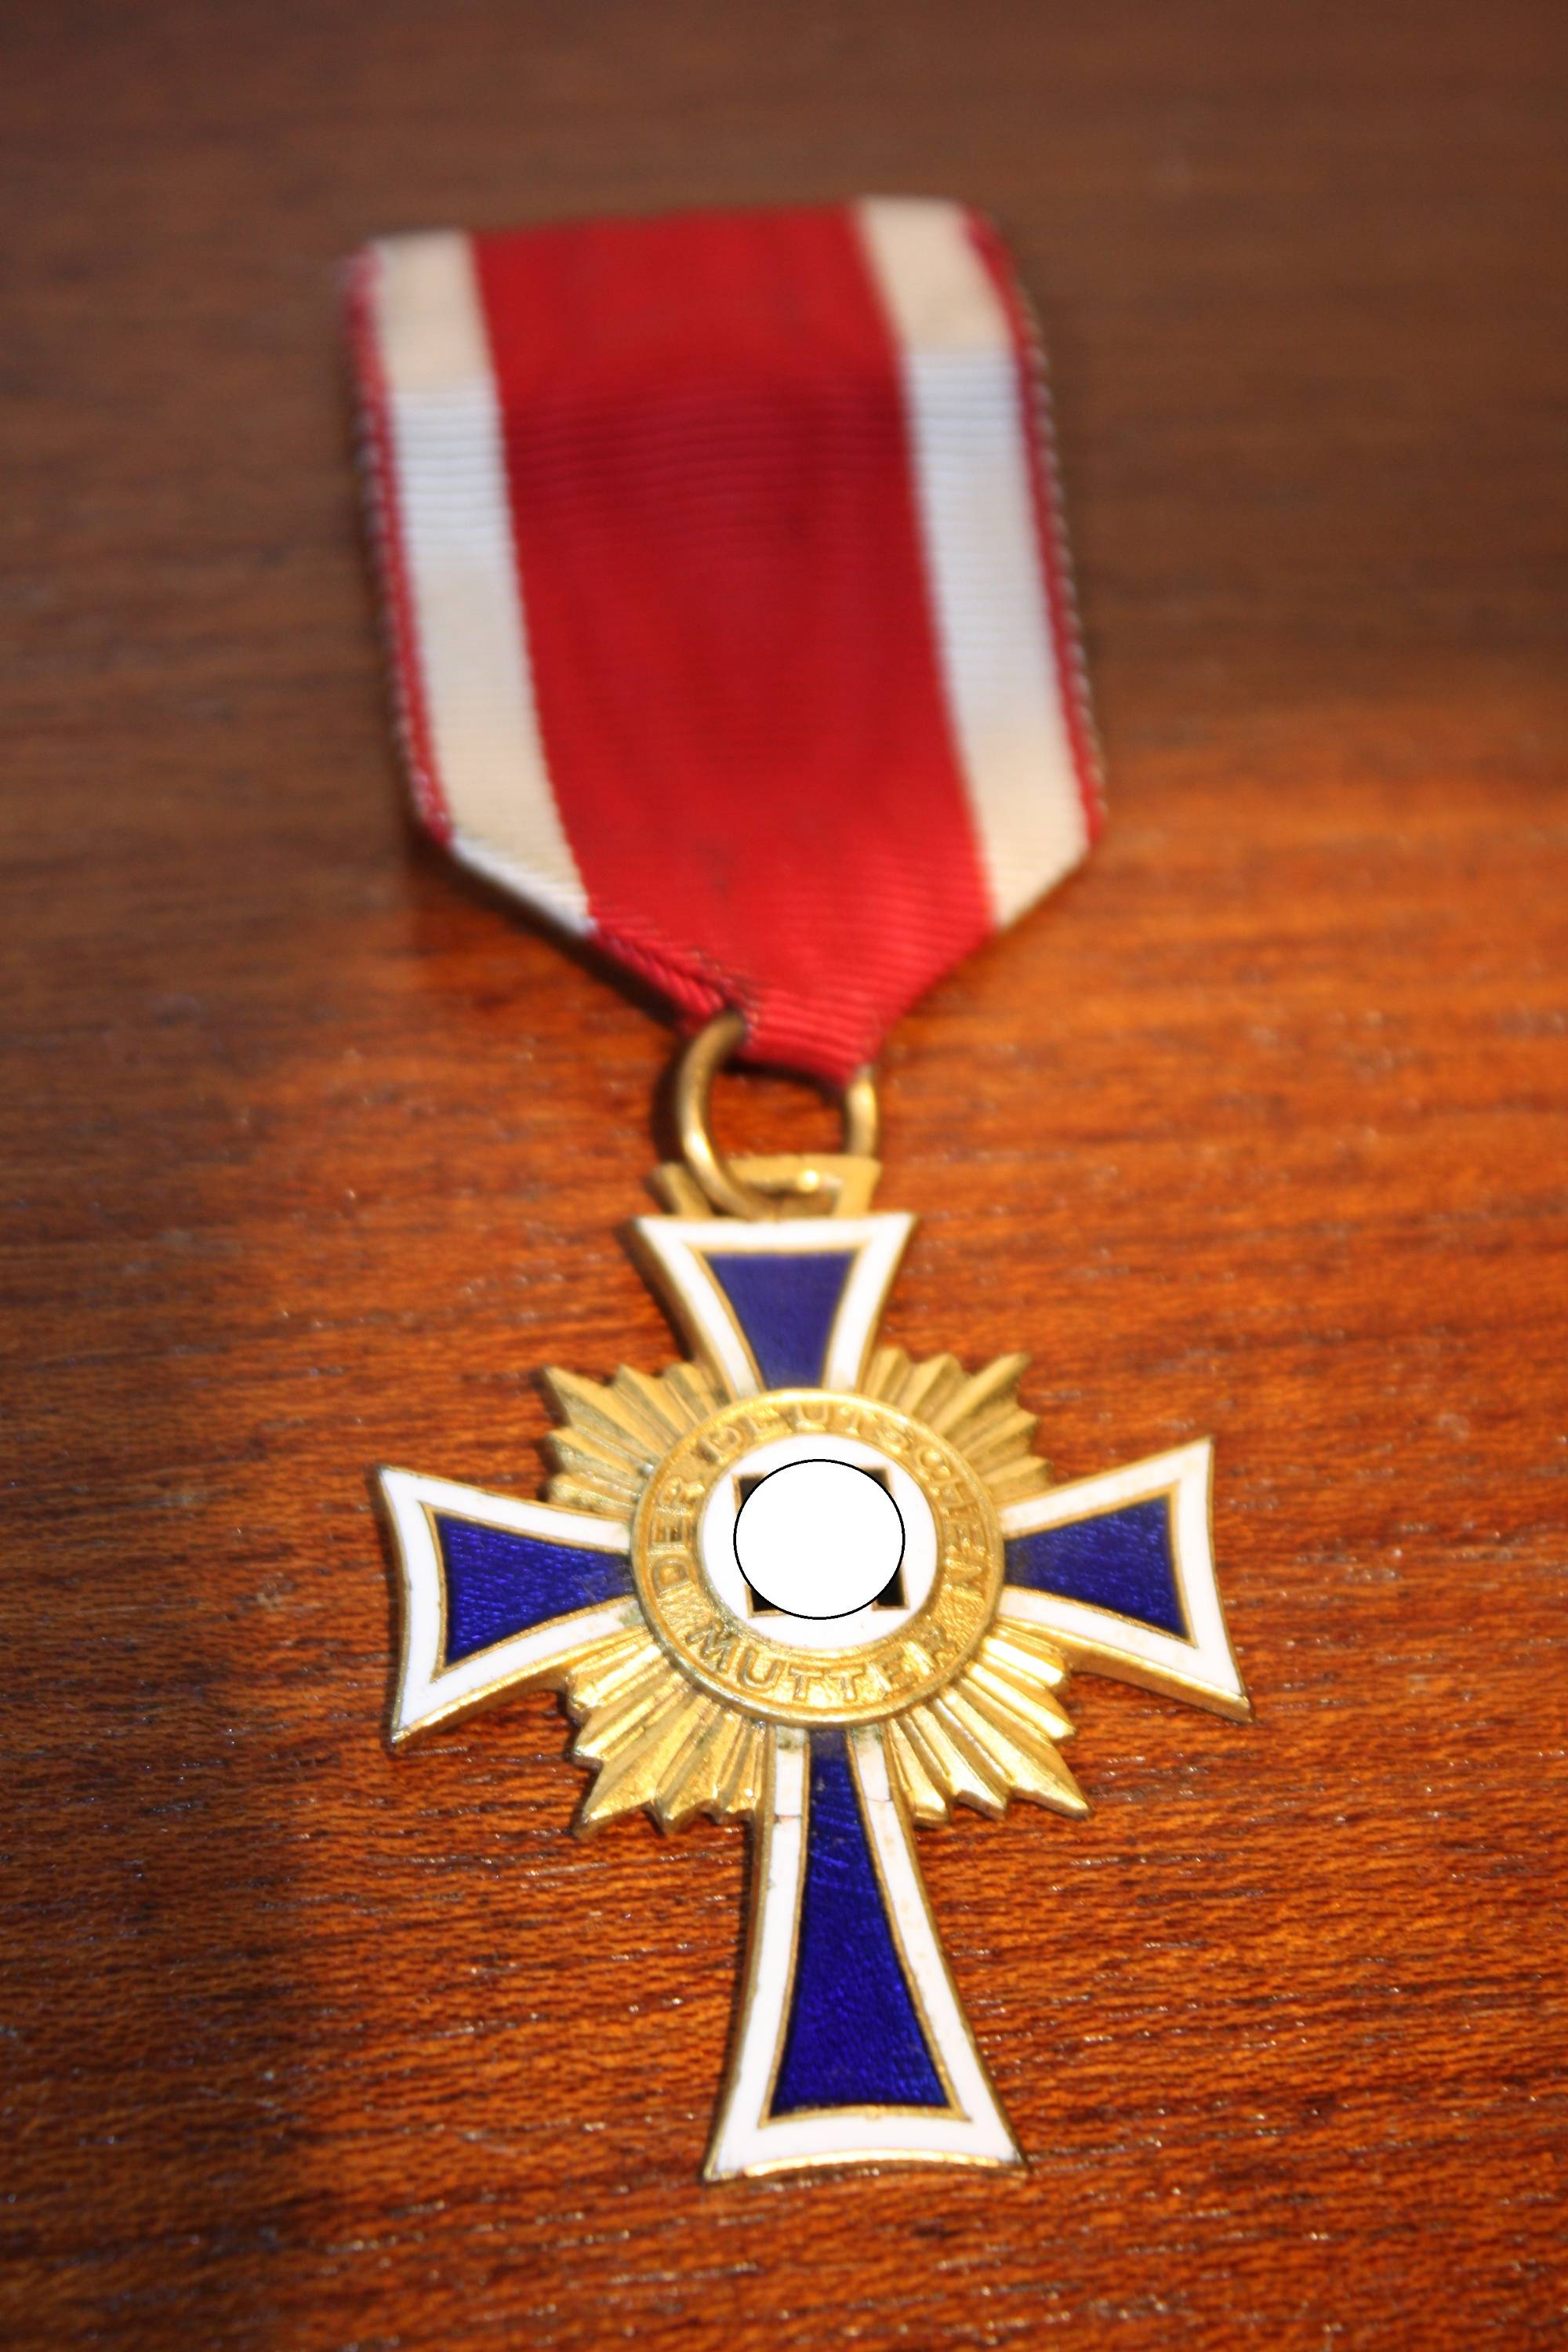 A German World War 2 medal Mother's Cross in Gold, 1st level